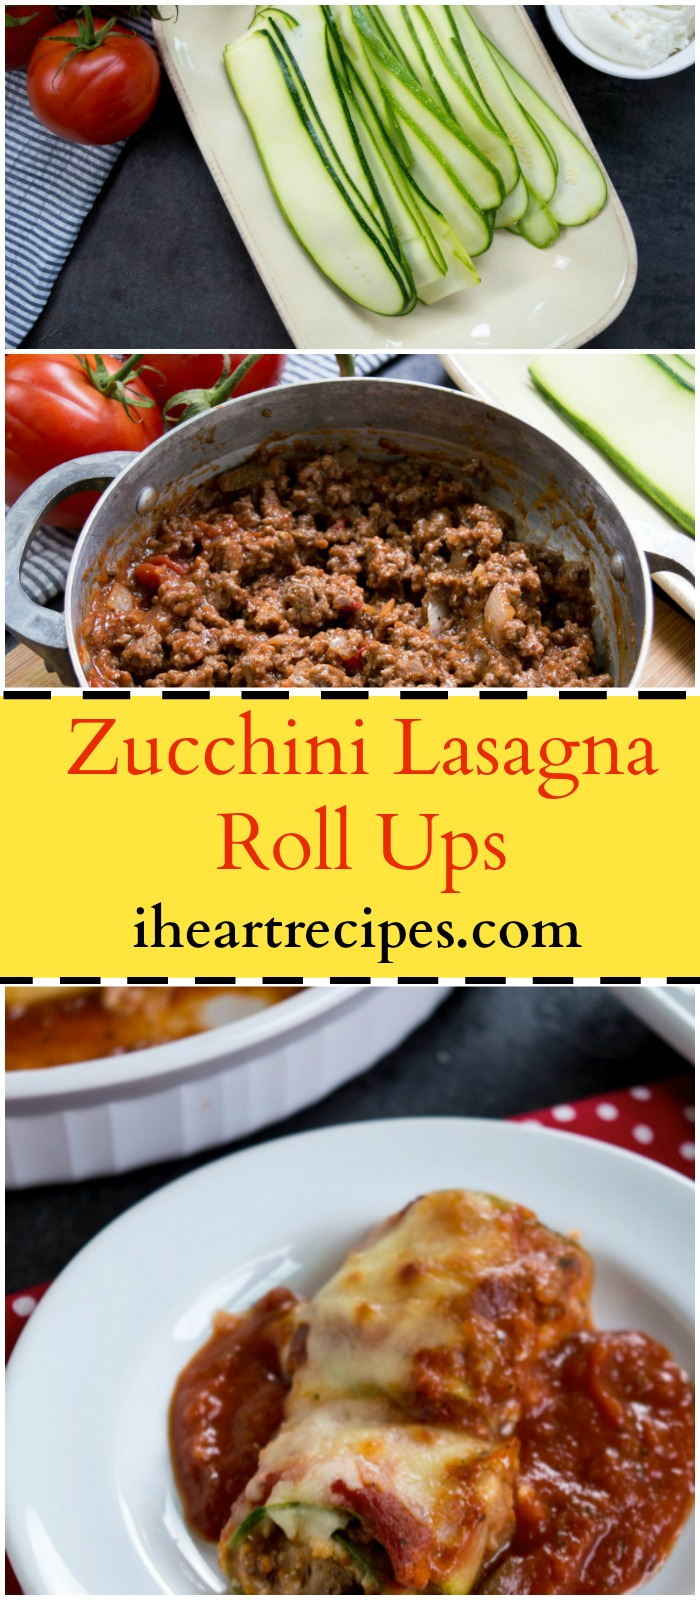 Zucchini Lasagna Roll Ups with Beef & Ricotta | I Heart Recipes